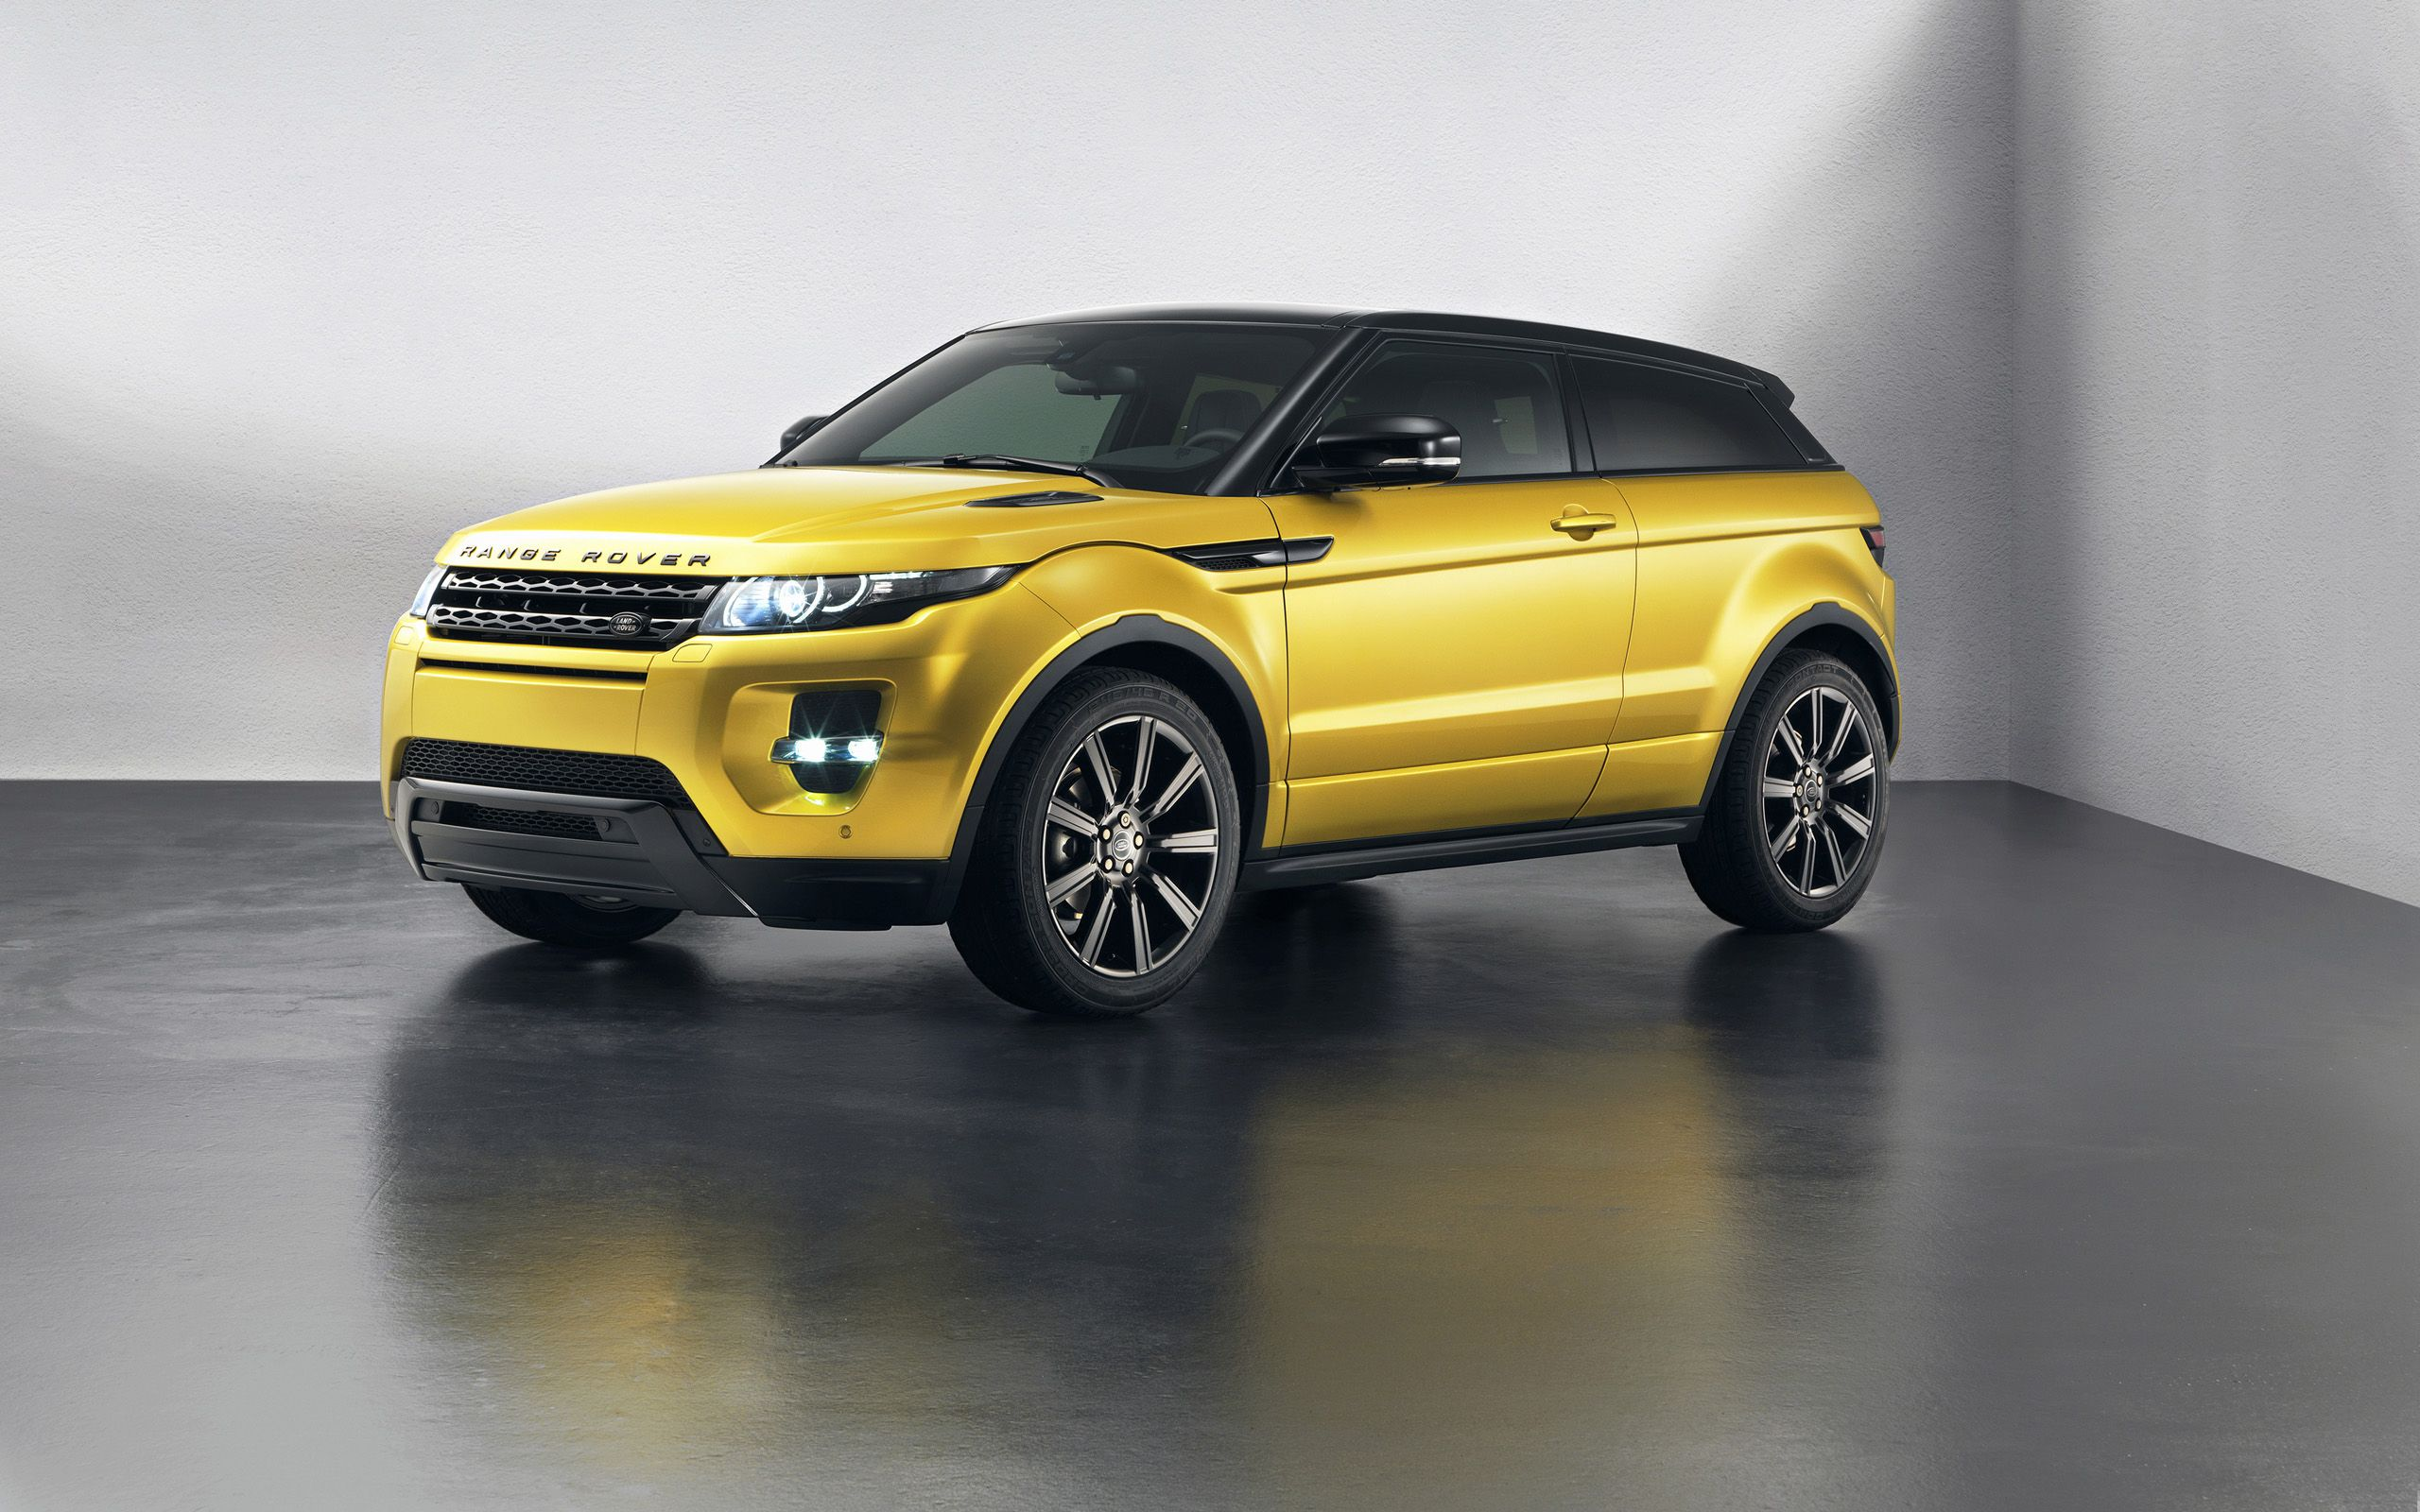 2013_land_rover_range_rover_evoque_special_edition wide jpg 2560 1600 landrover_2 pinterest range rover evoque range rovers and land rovers